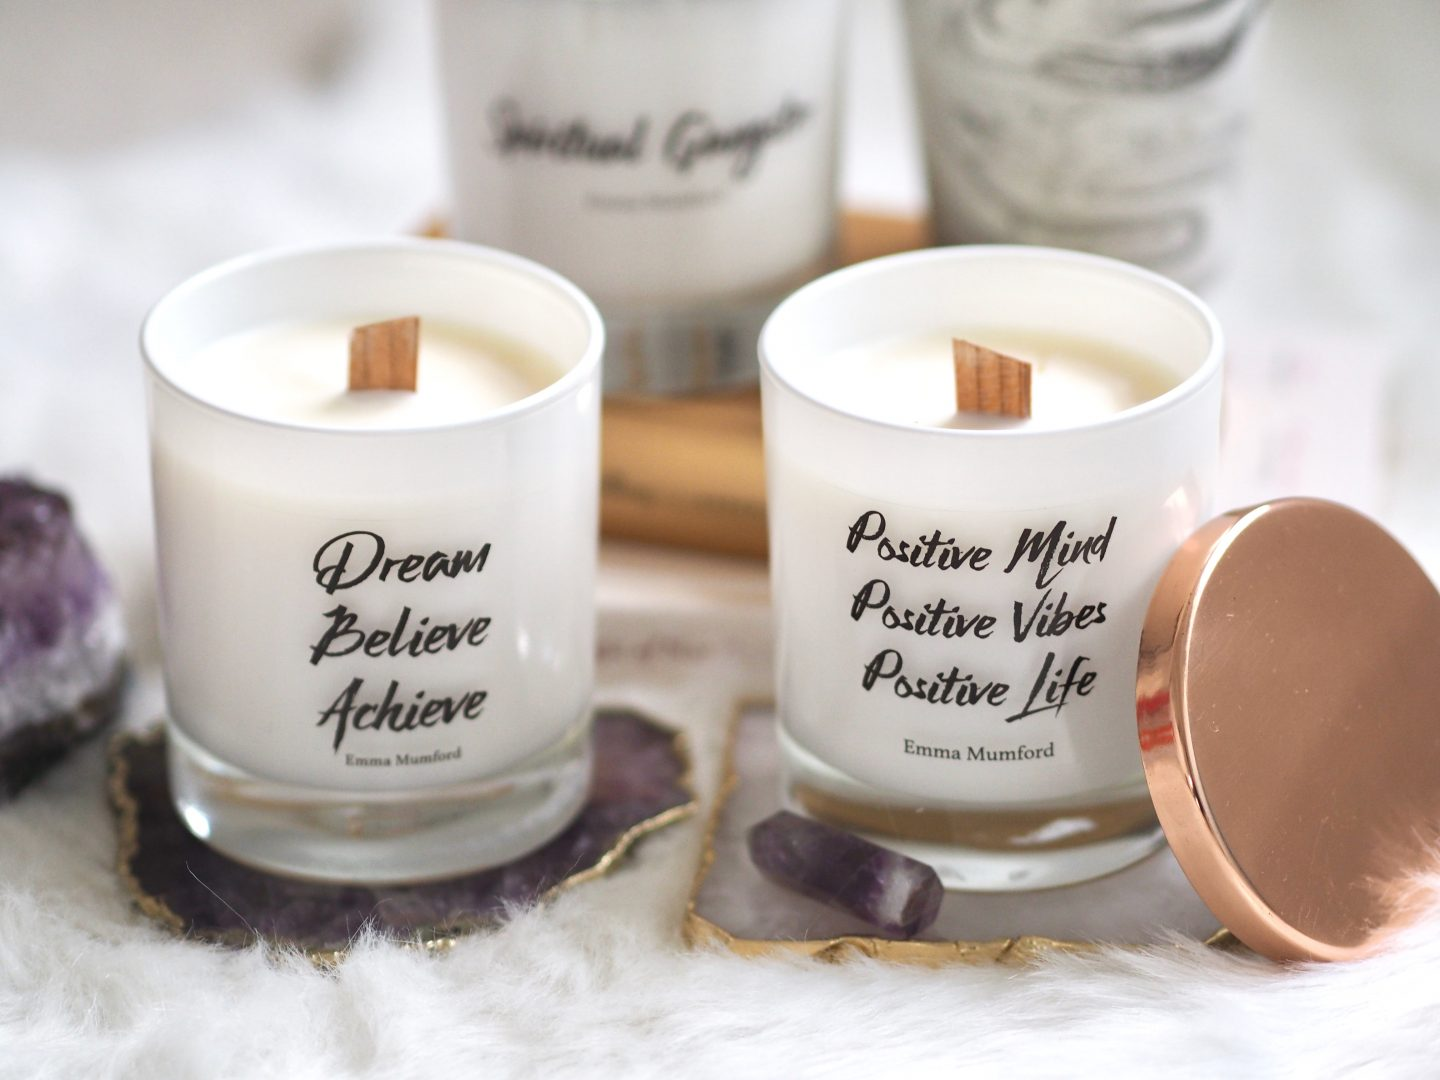 I'VE ADDED TWO NEW DESIGNS TO MY CANDLE RANGE!